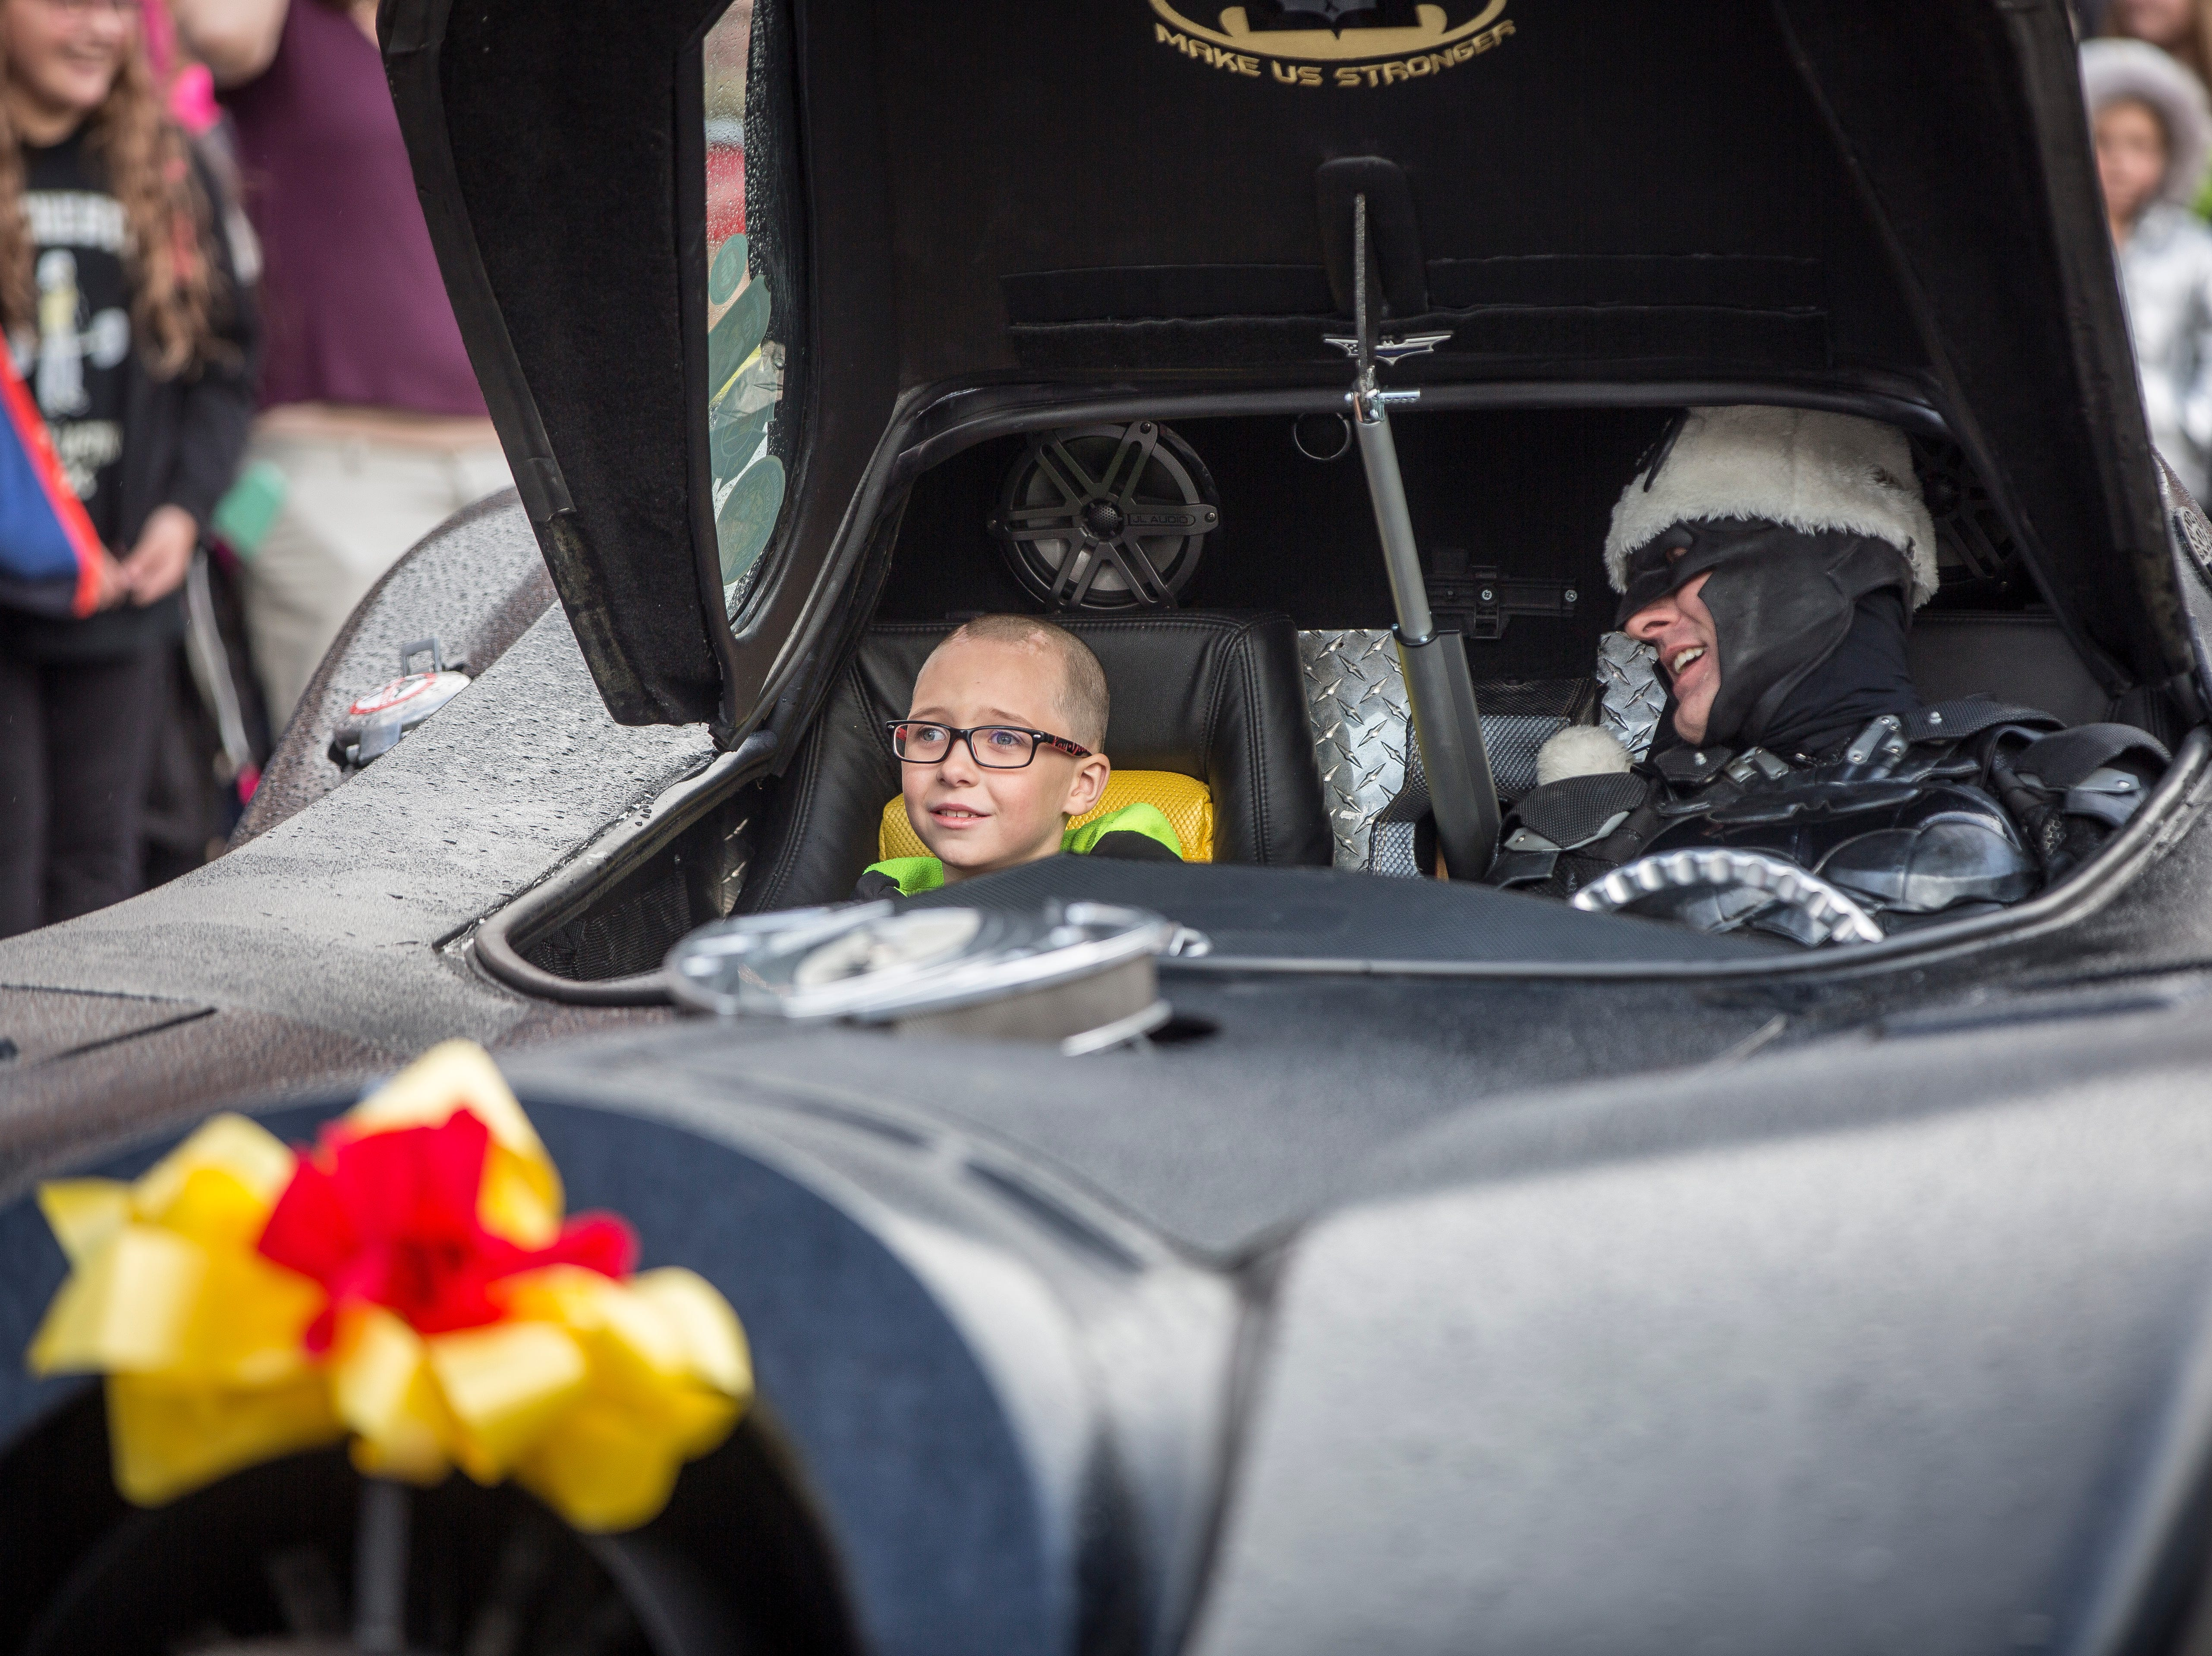 Christian Daugherty, a young Albany boy who was diagnosed with brain cancer, climbs into the Batmobile with John Buckland dressed as Batman. The organization H4H Foundation helps provide last wish Batmobile rides to youth who are terminally ill and more.